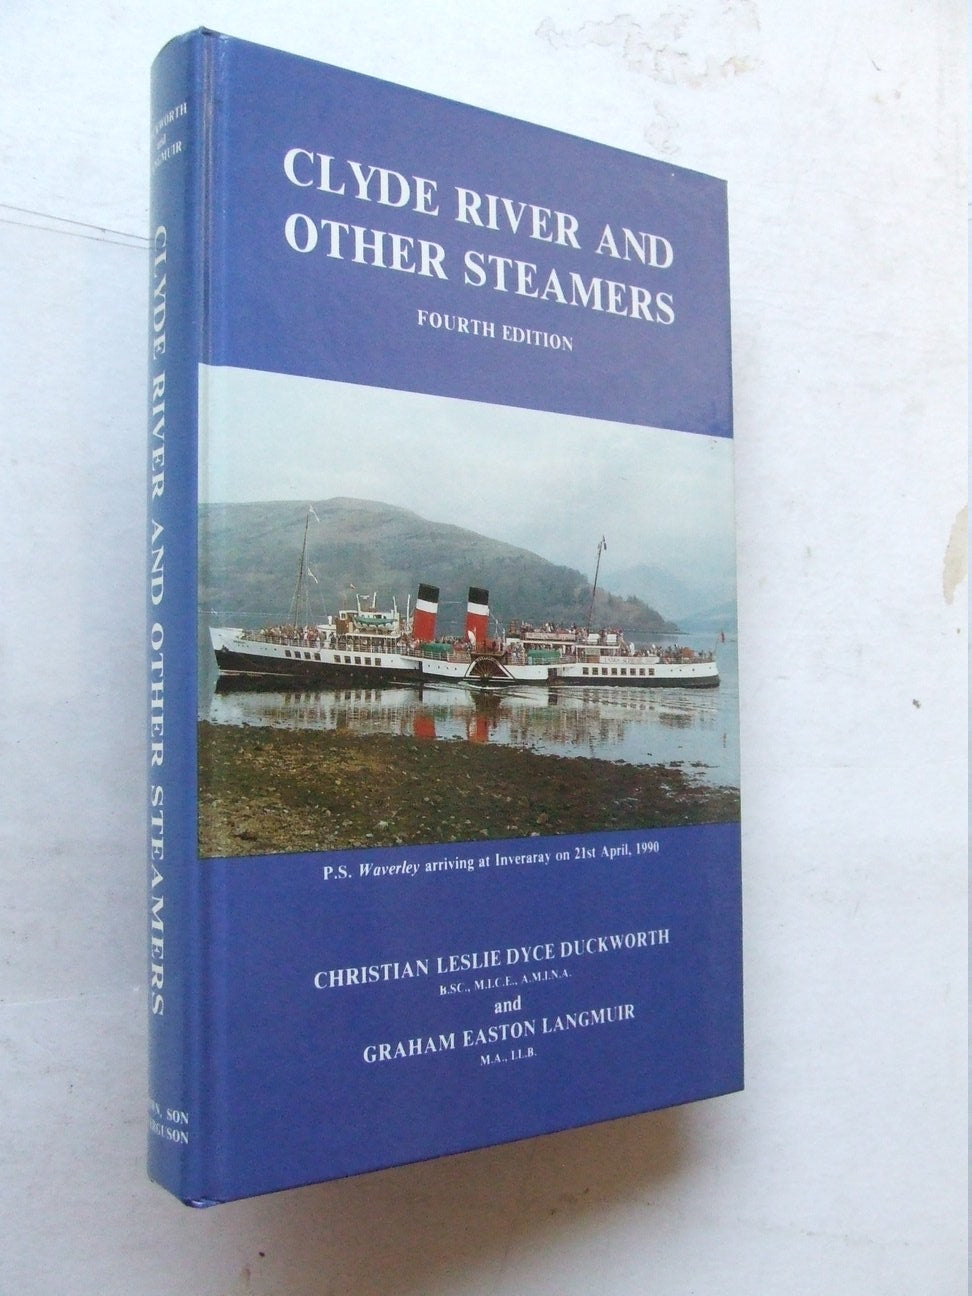 Clyde River and Other Steamers  -  4th edition